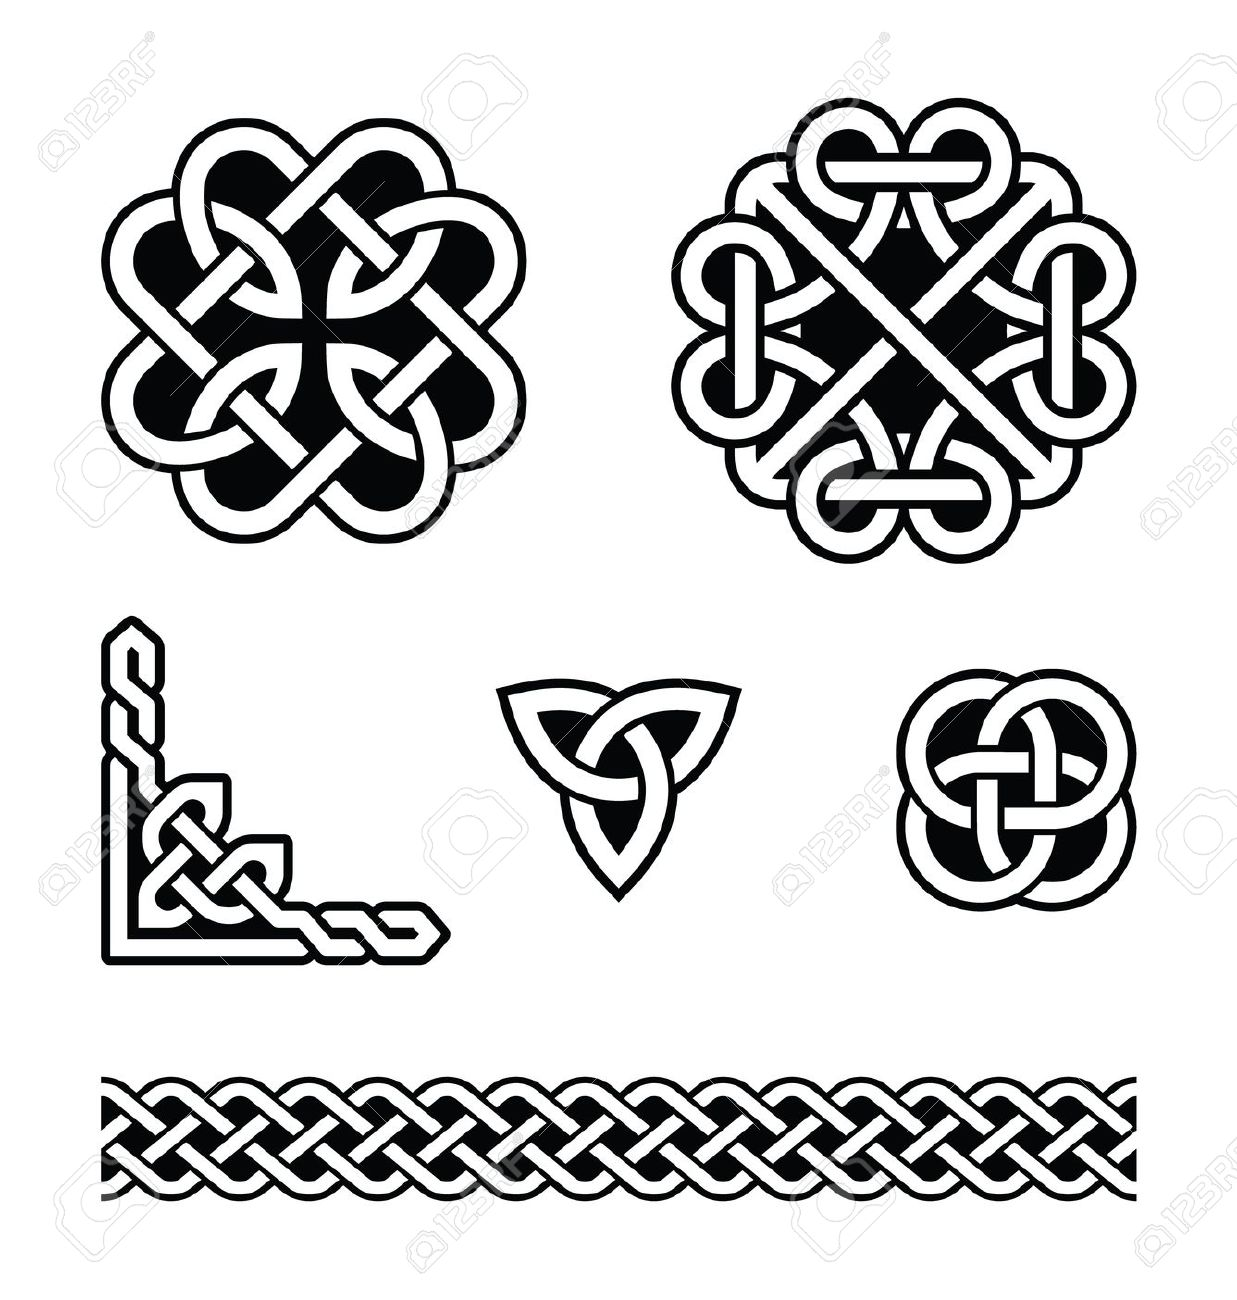 Celt clipart braid Pinterest Celtic  Knots Buscar